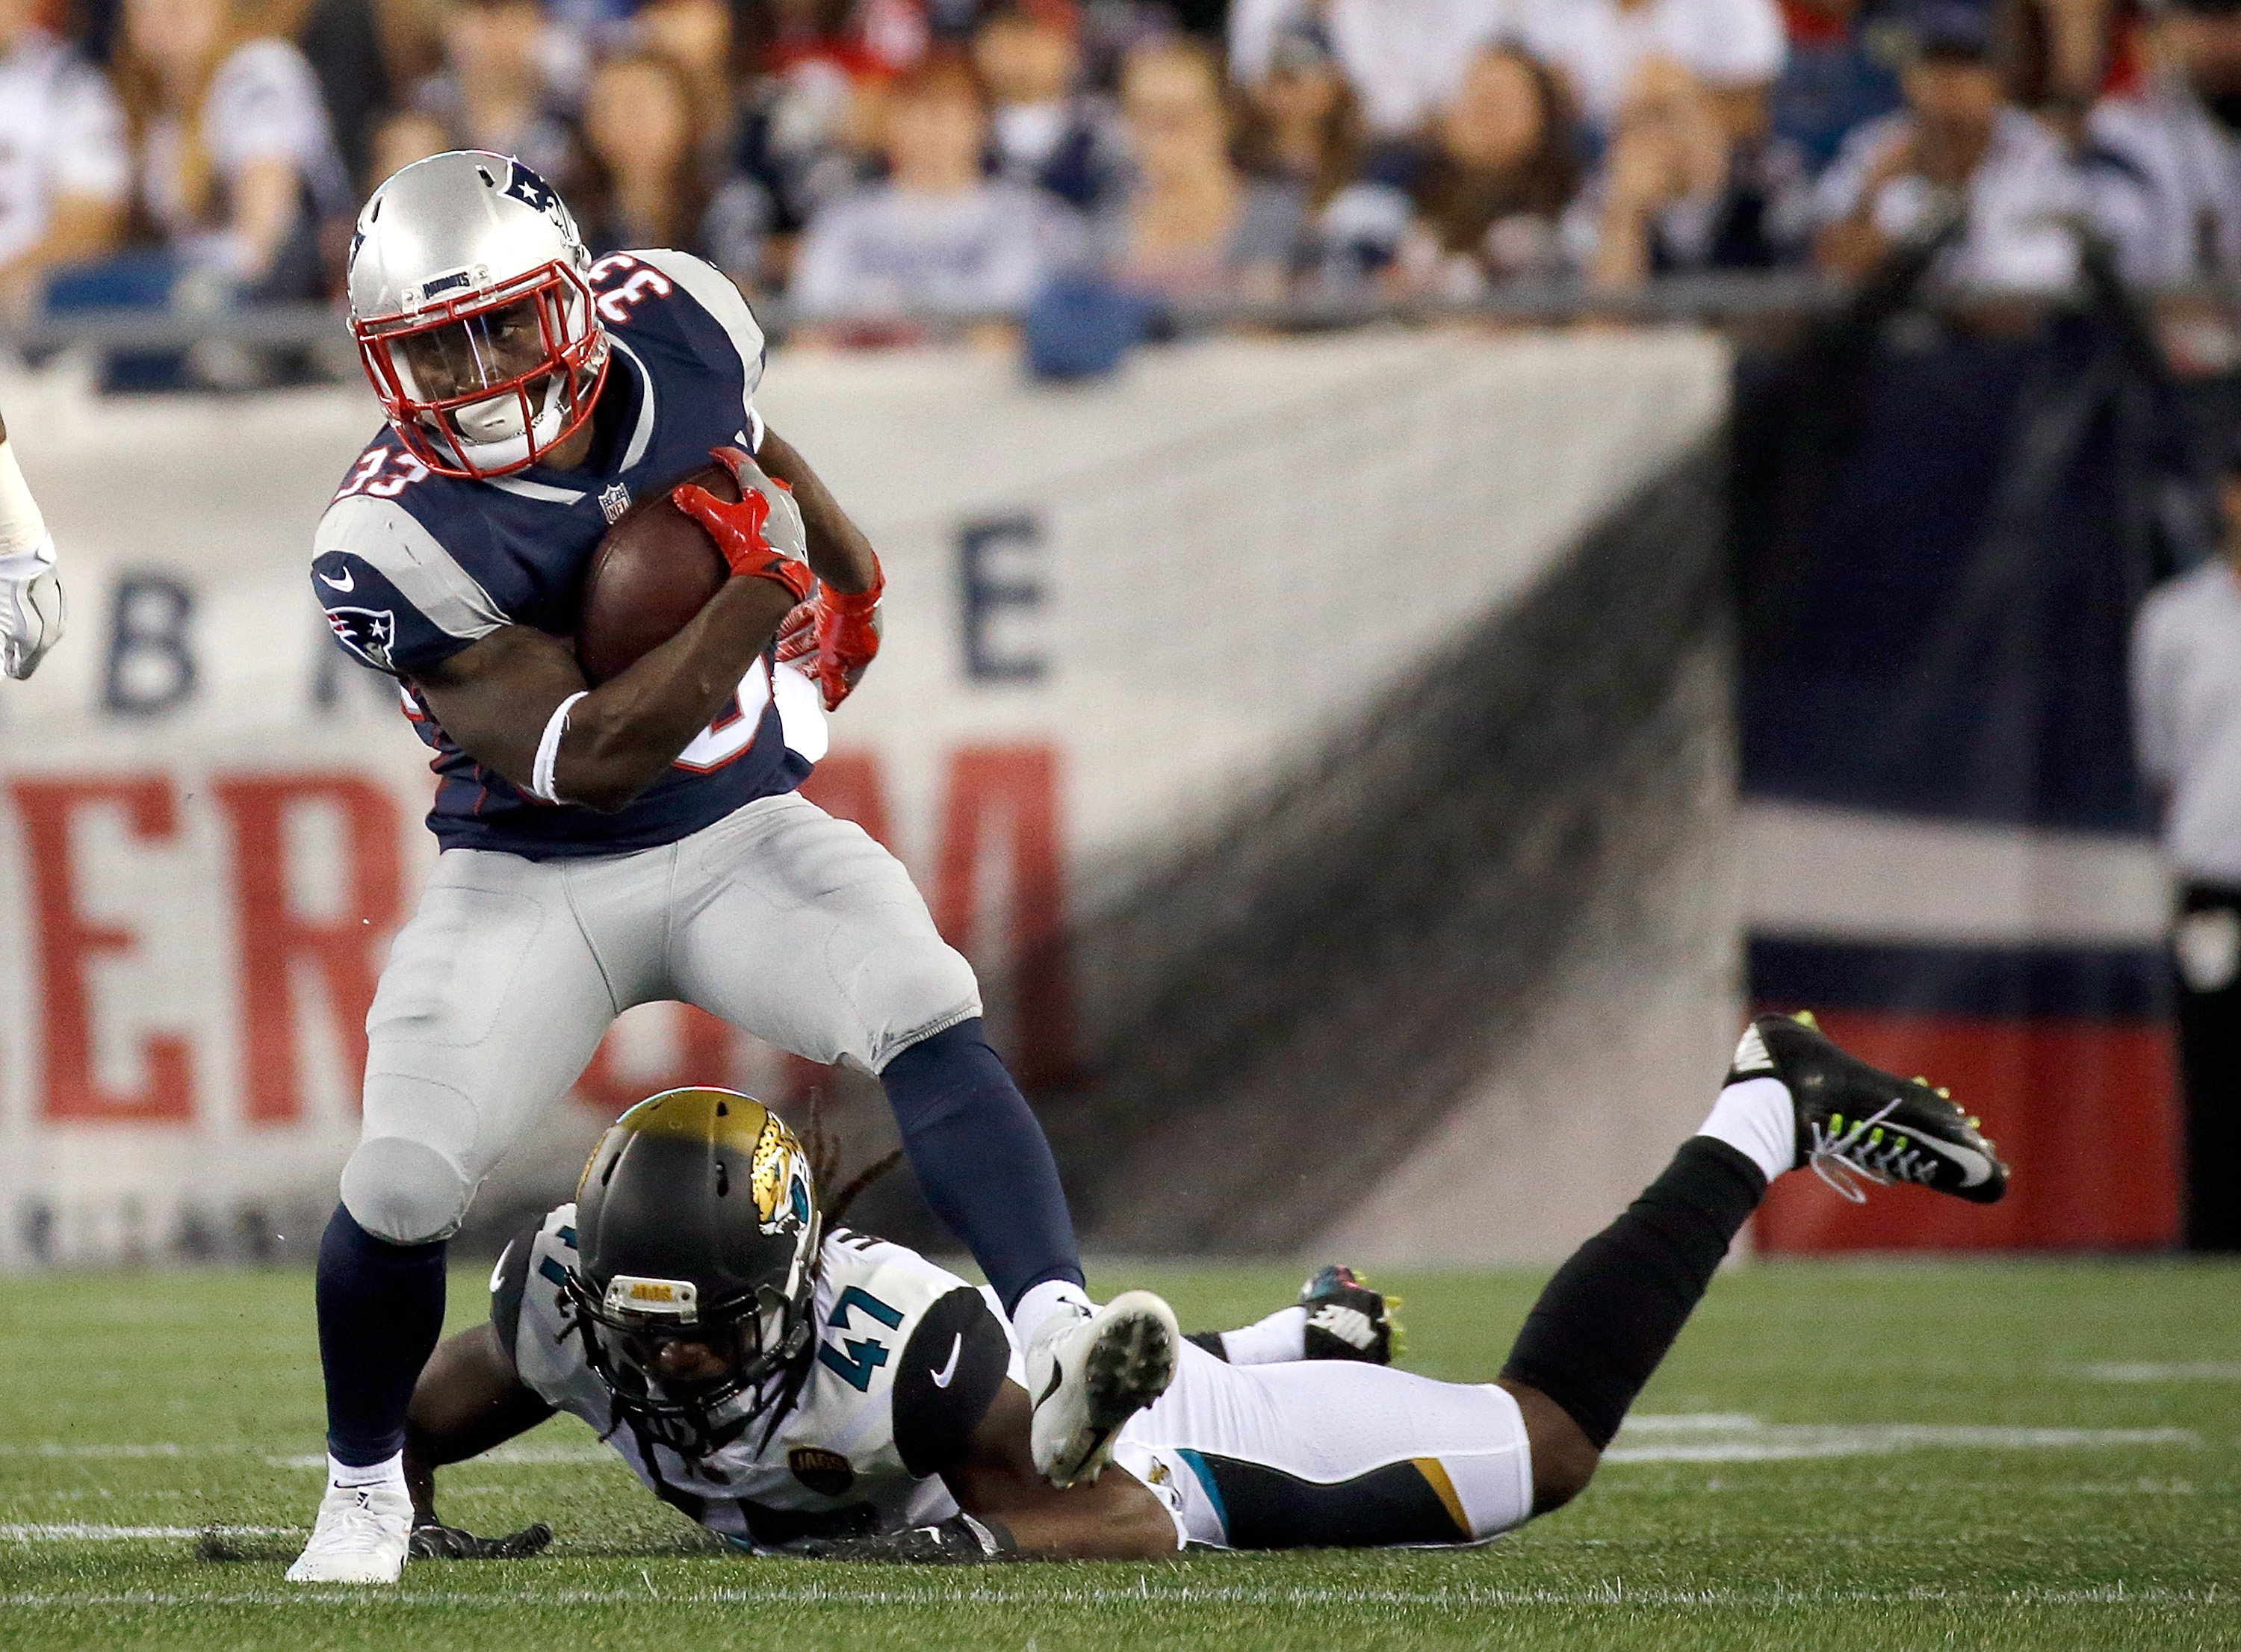 Mike Gillislee says he's '100 percent' after rehabbing hamstring